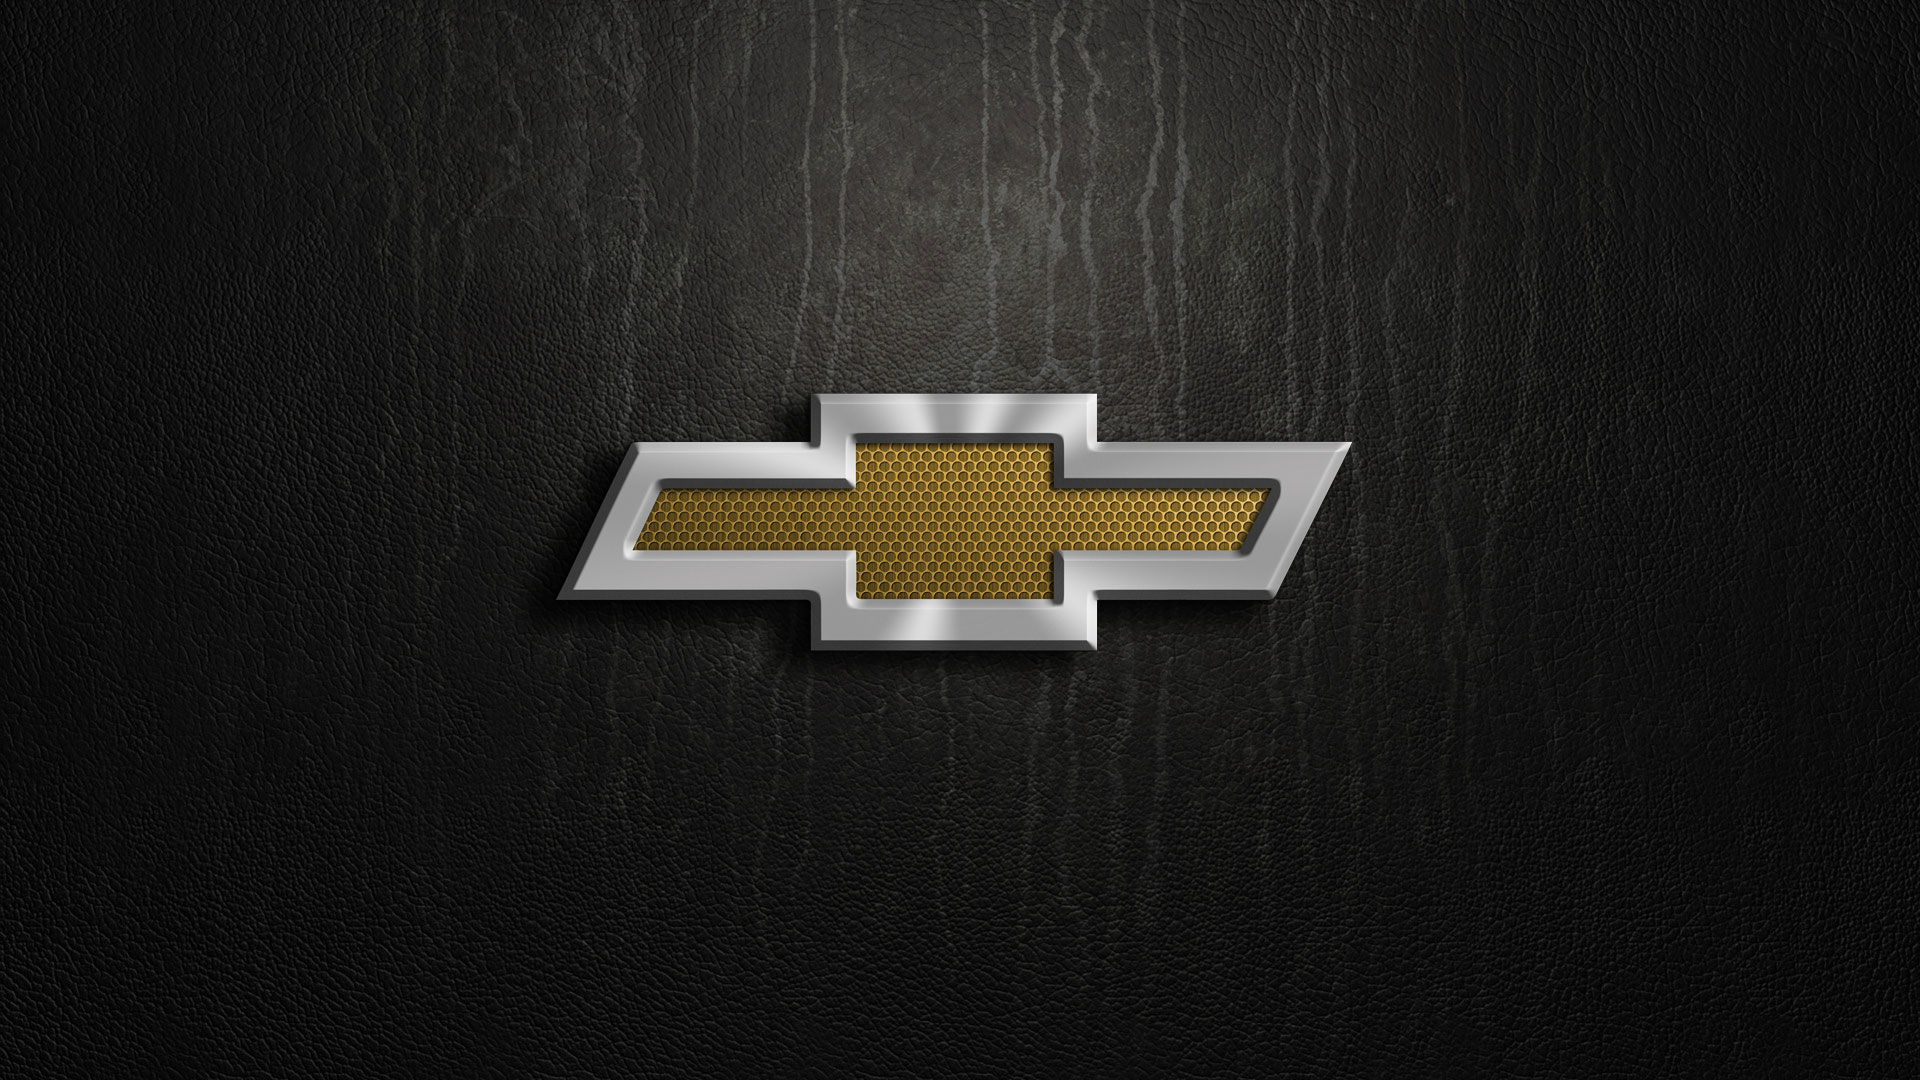 Chevy Wallpaper